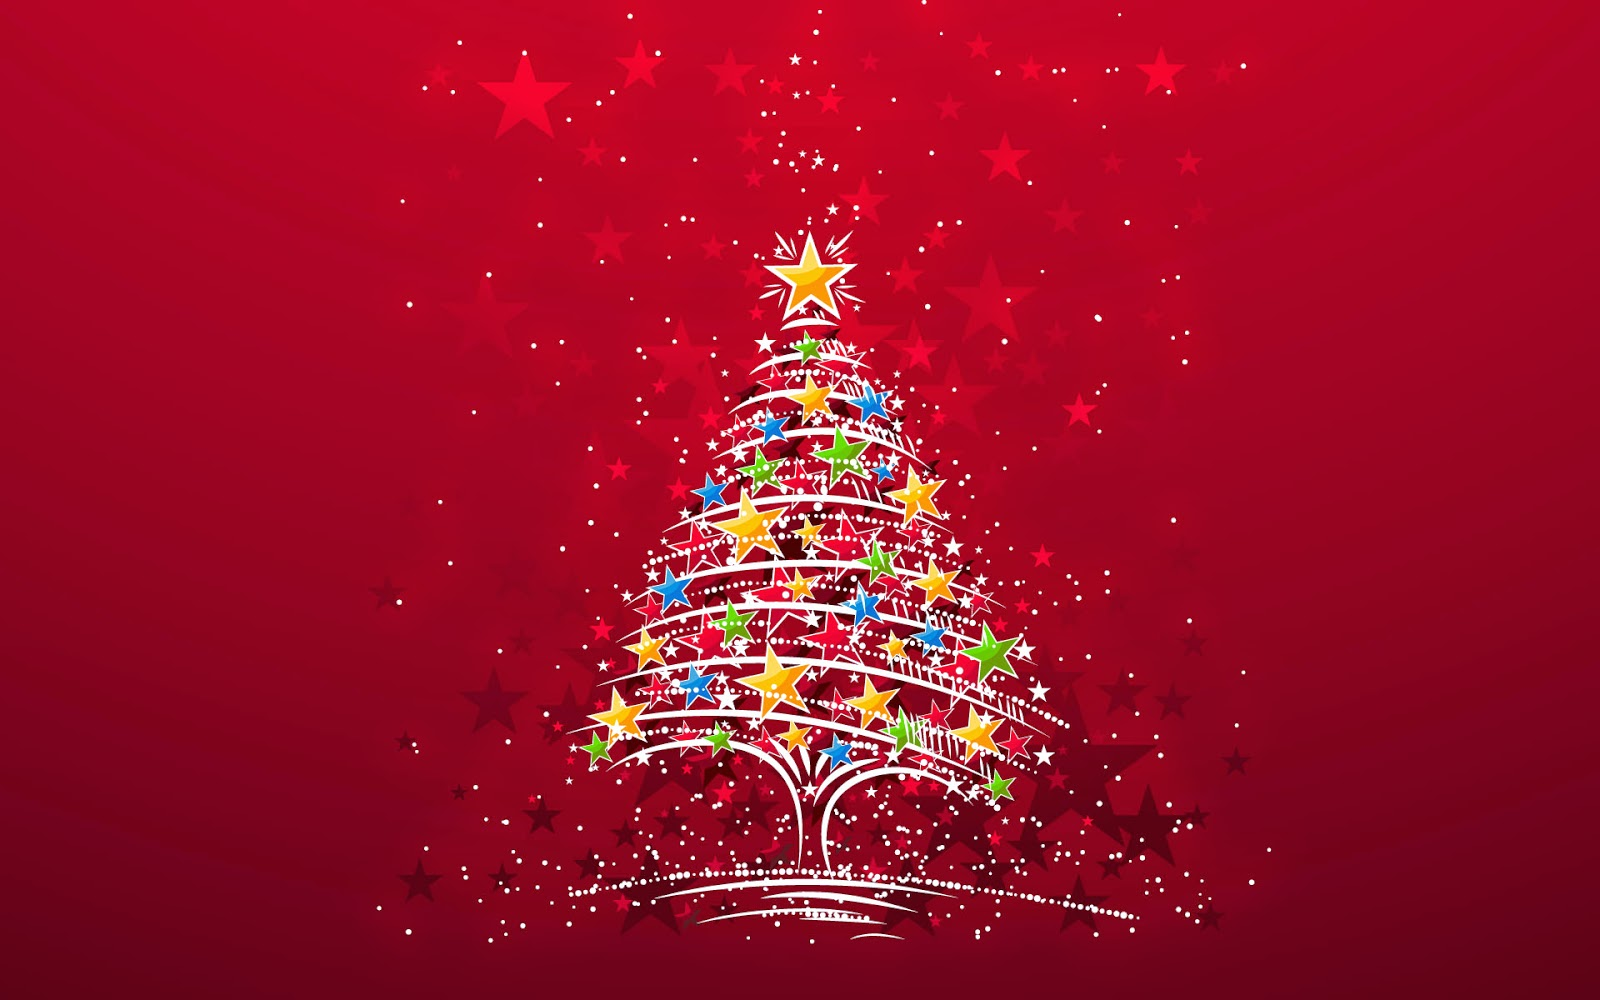 Christmas-tree-abstract-vector-image-hd-picture-free-download.jpg